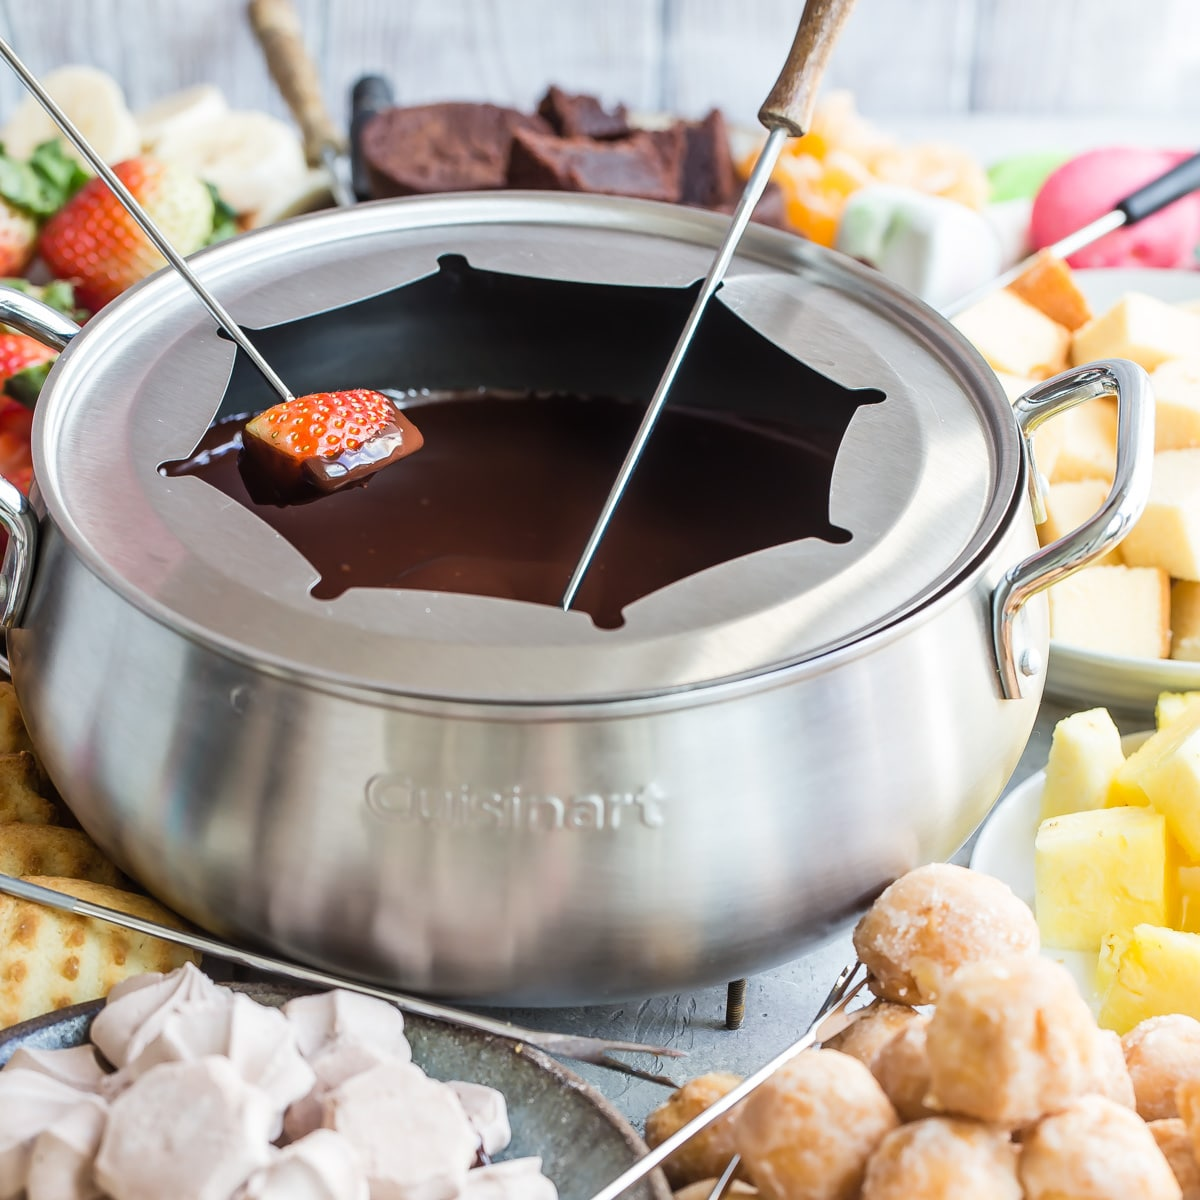 I know you'll fall head over heels in love with this classic Chocolate Fondue. Like the best desserts, it's festive, simple, and oh, so romantic. The hardest part may be deciding what to dip in chocolate first.